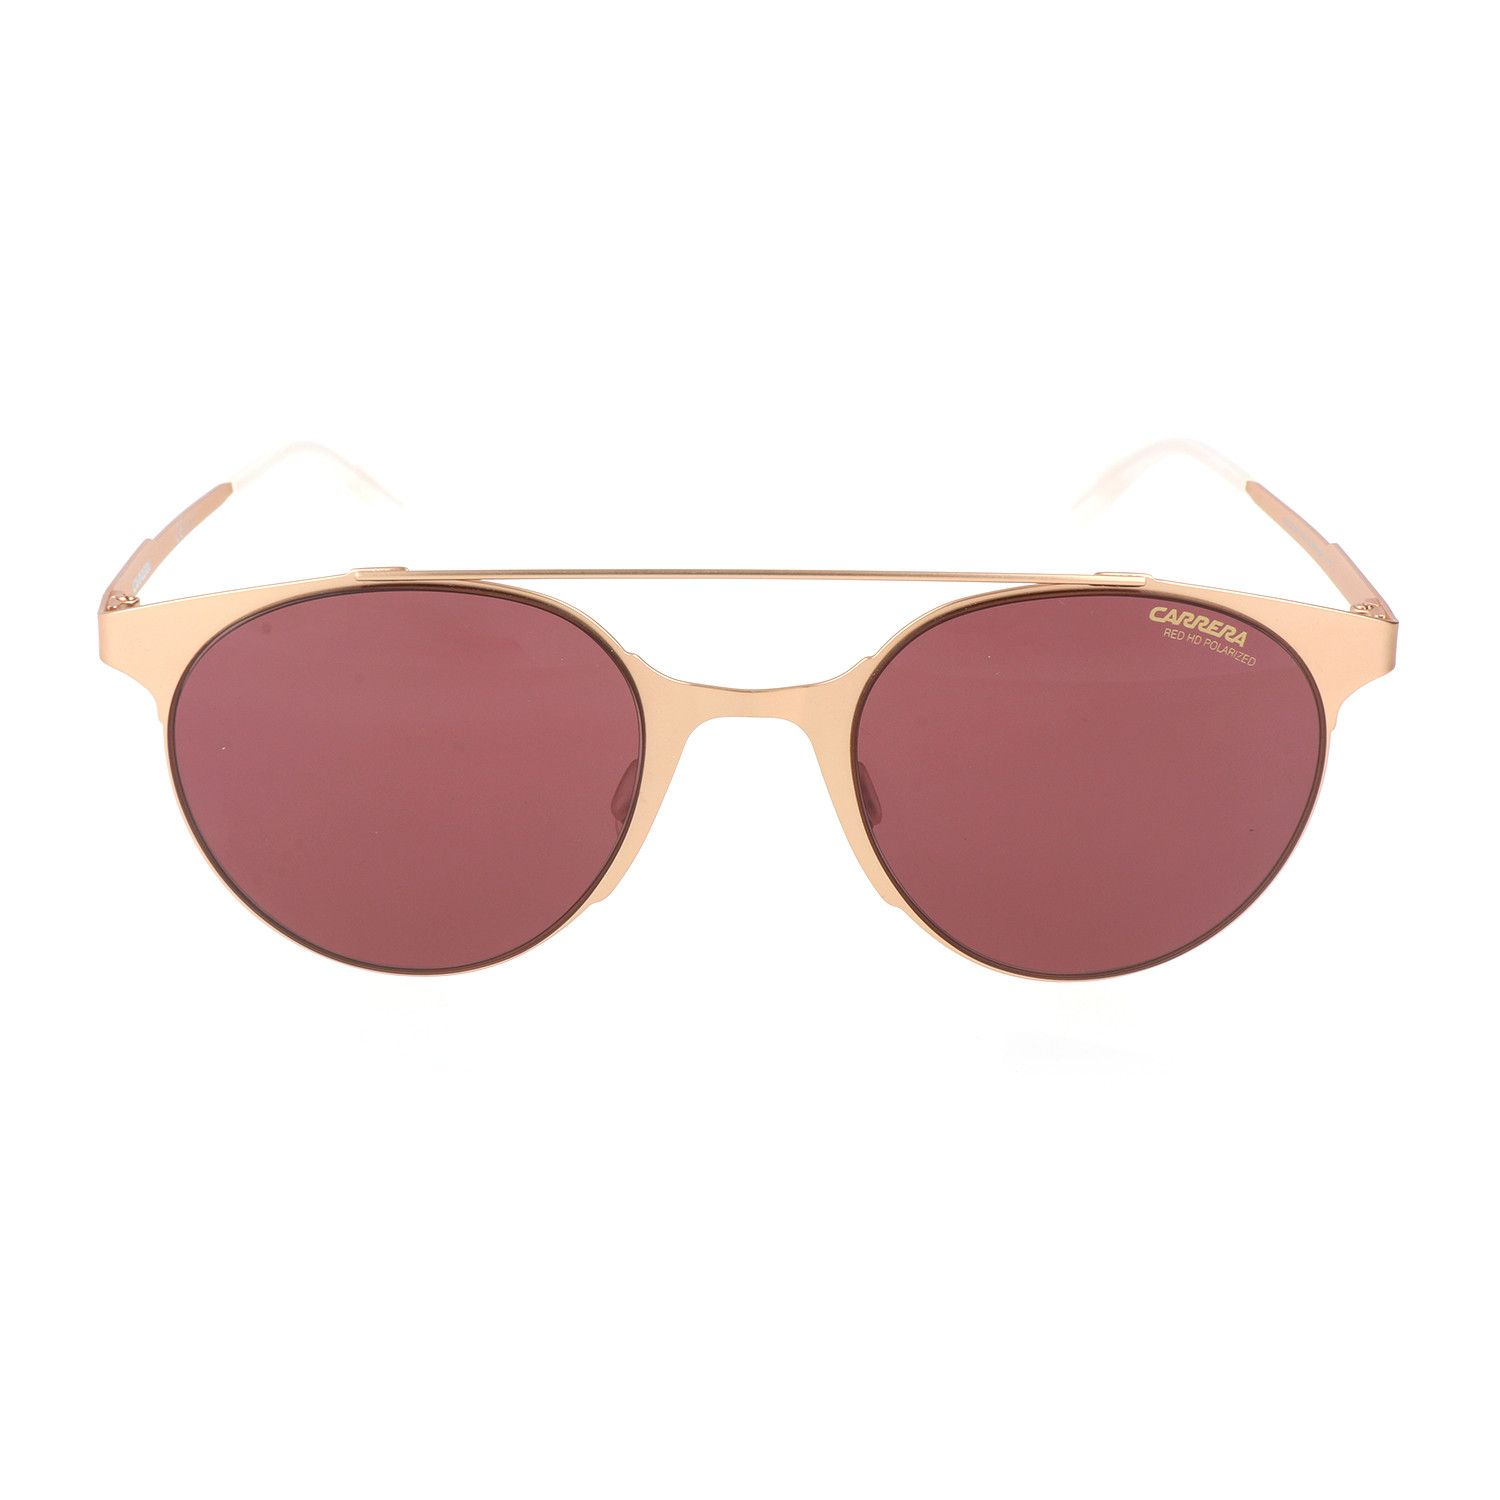 0081089538 Carrera 115 Sunglasses    Semi Matte Gold Copper  Sunglasses